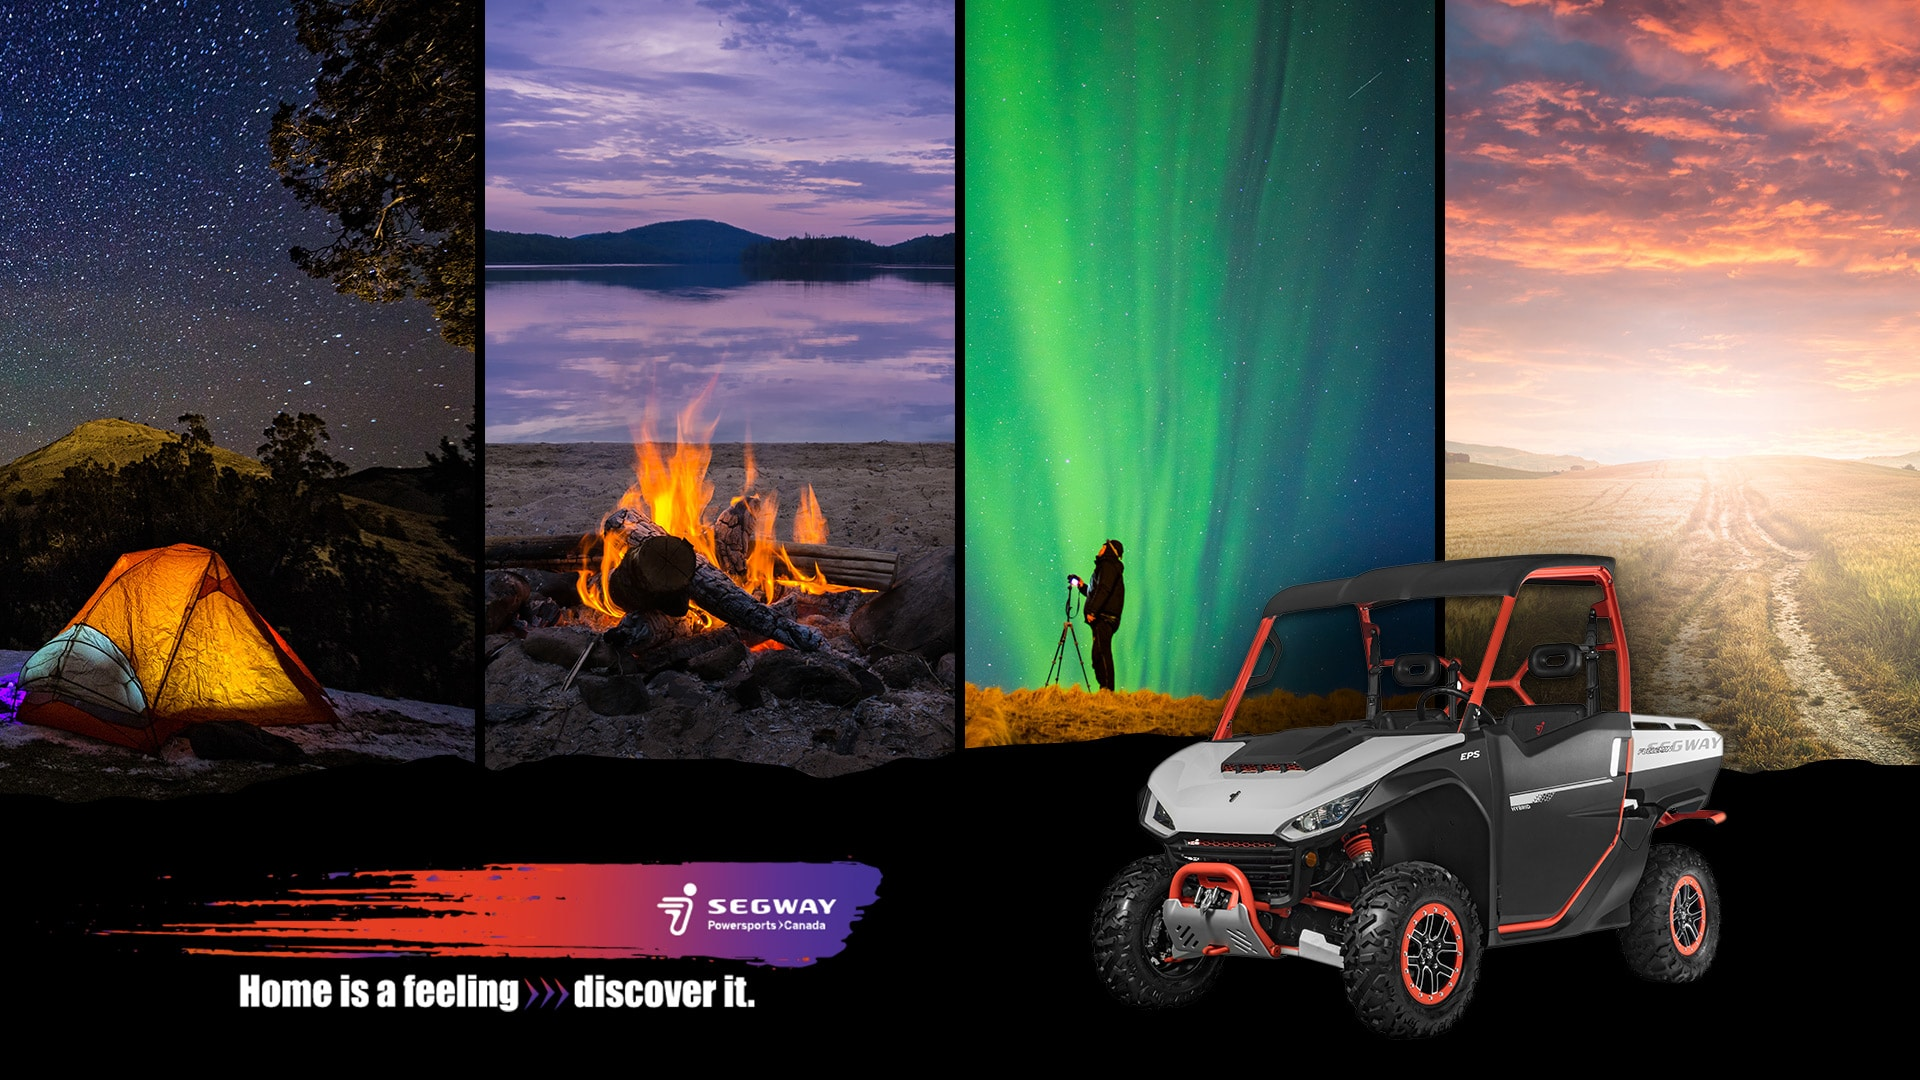 Discover the feeling of Home with Segway Powersports!